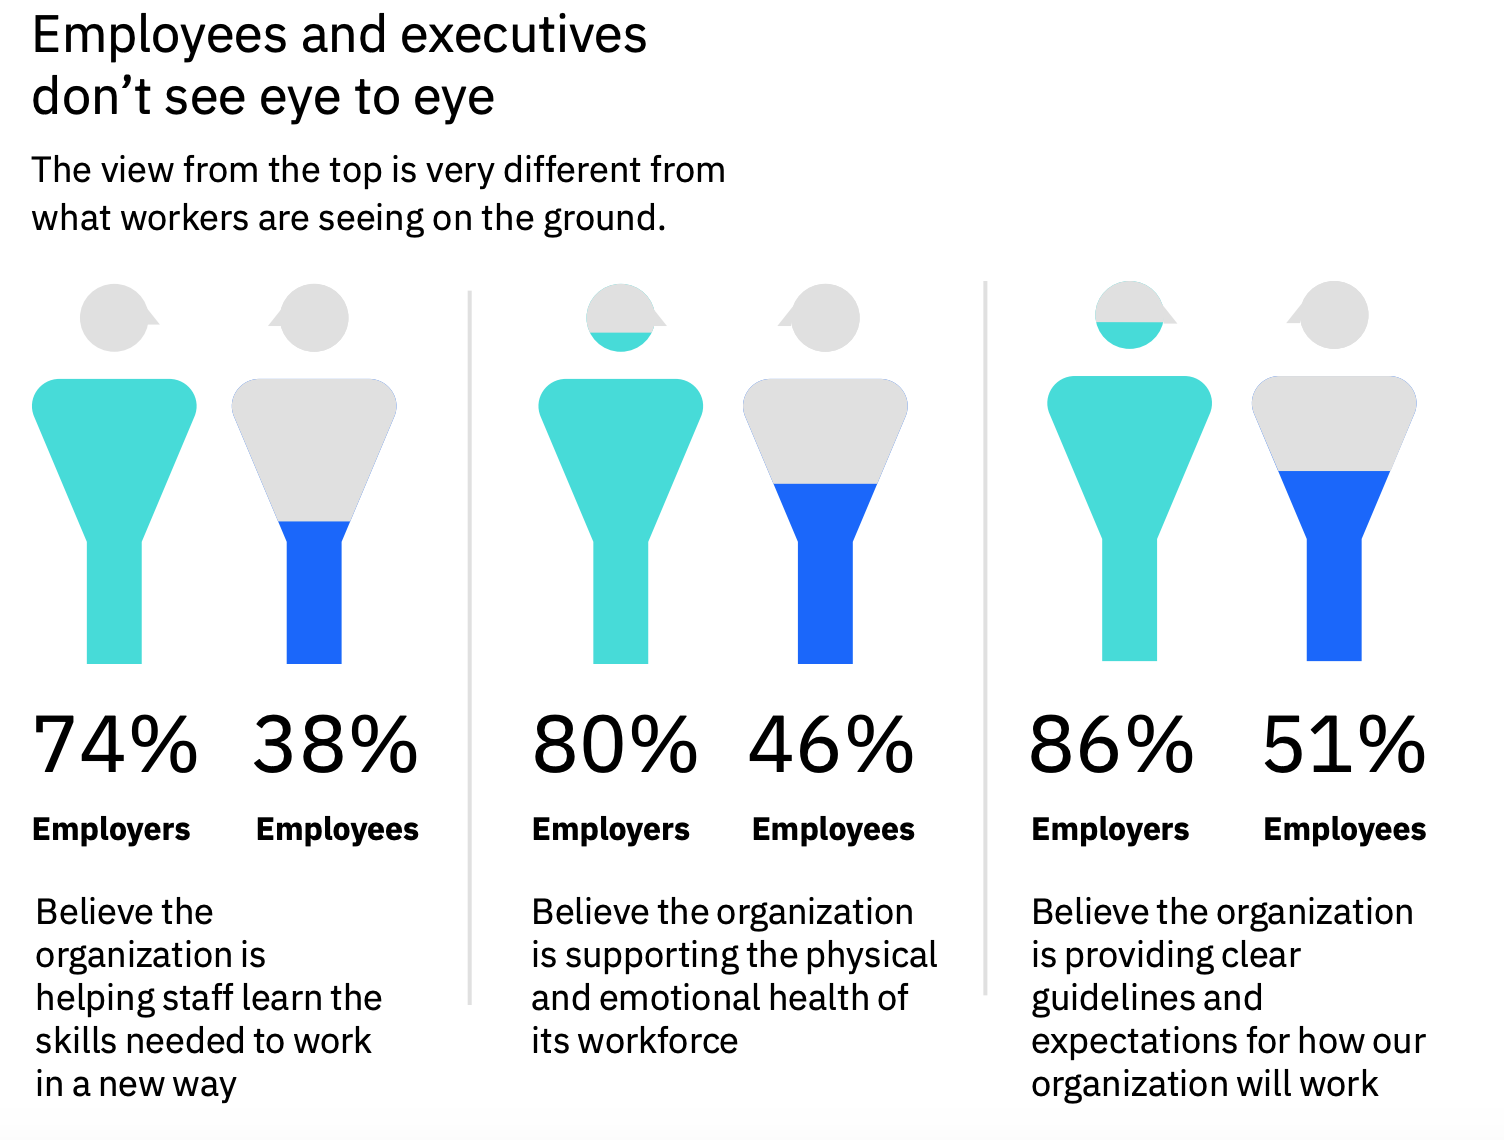 Employee executive organisation satisfaction workplace workforce Germany